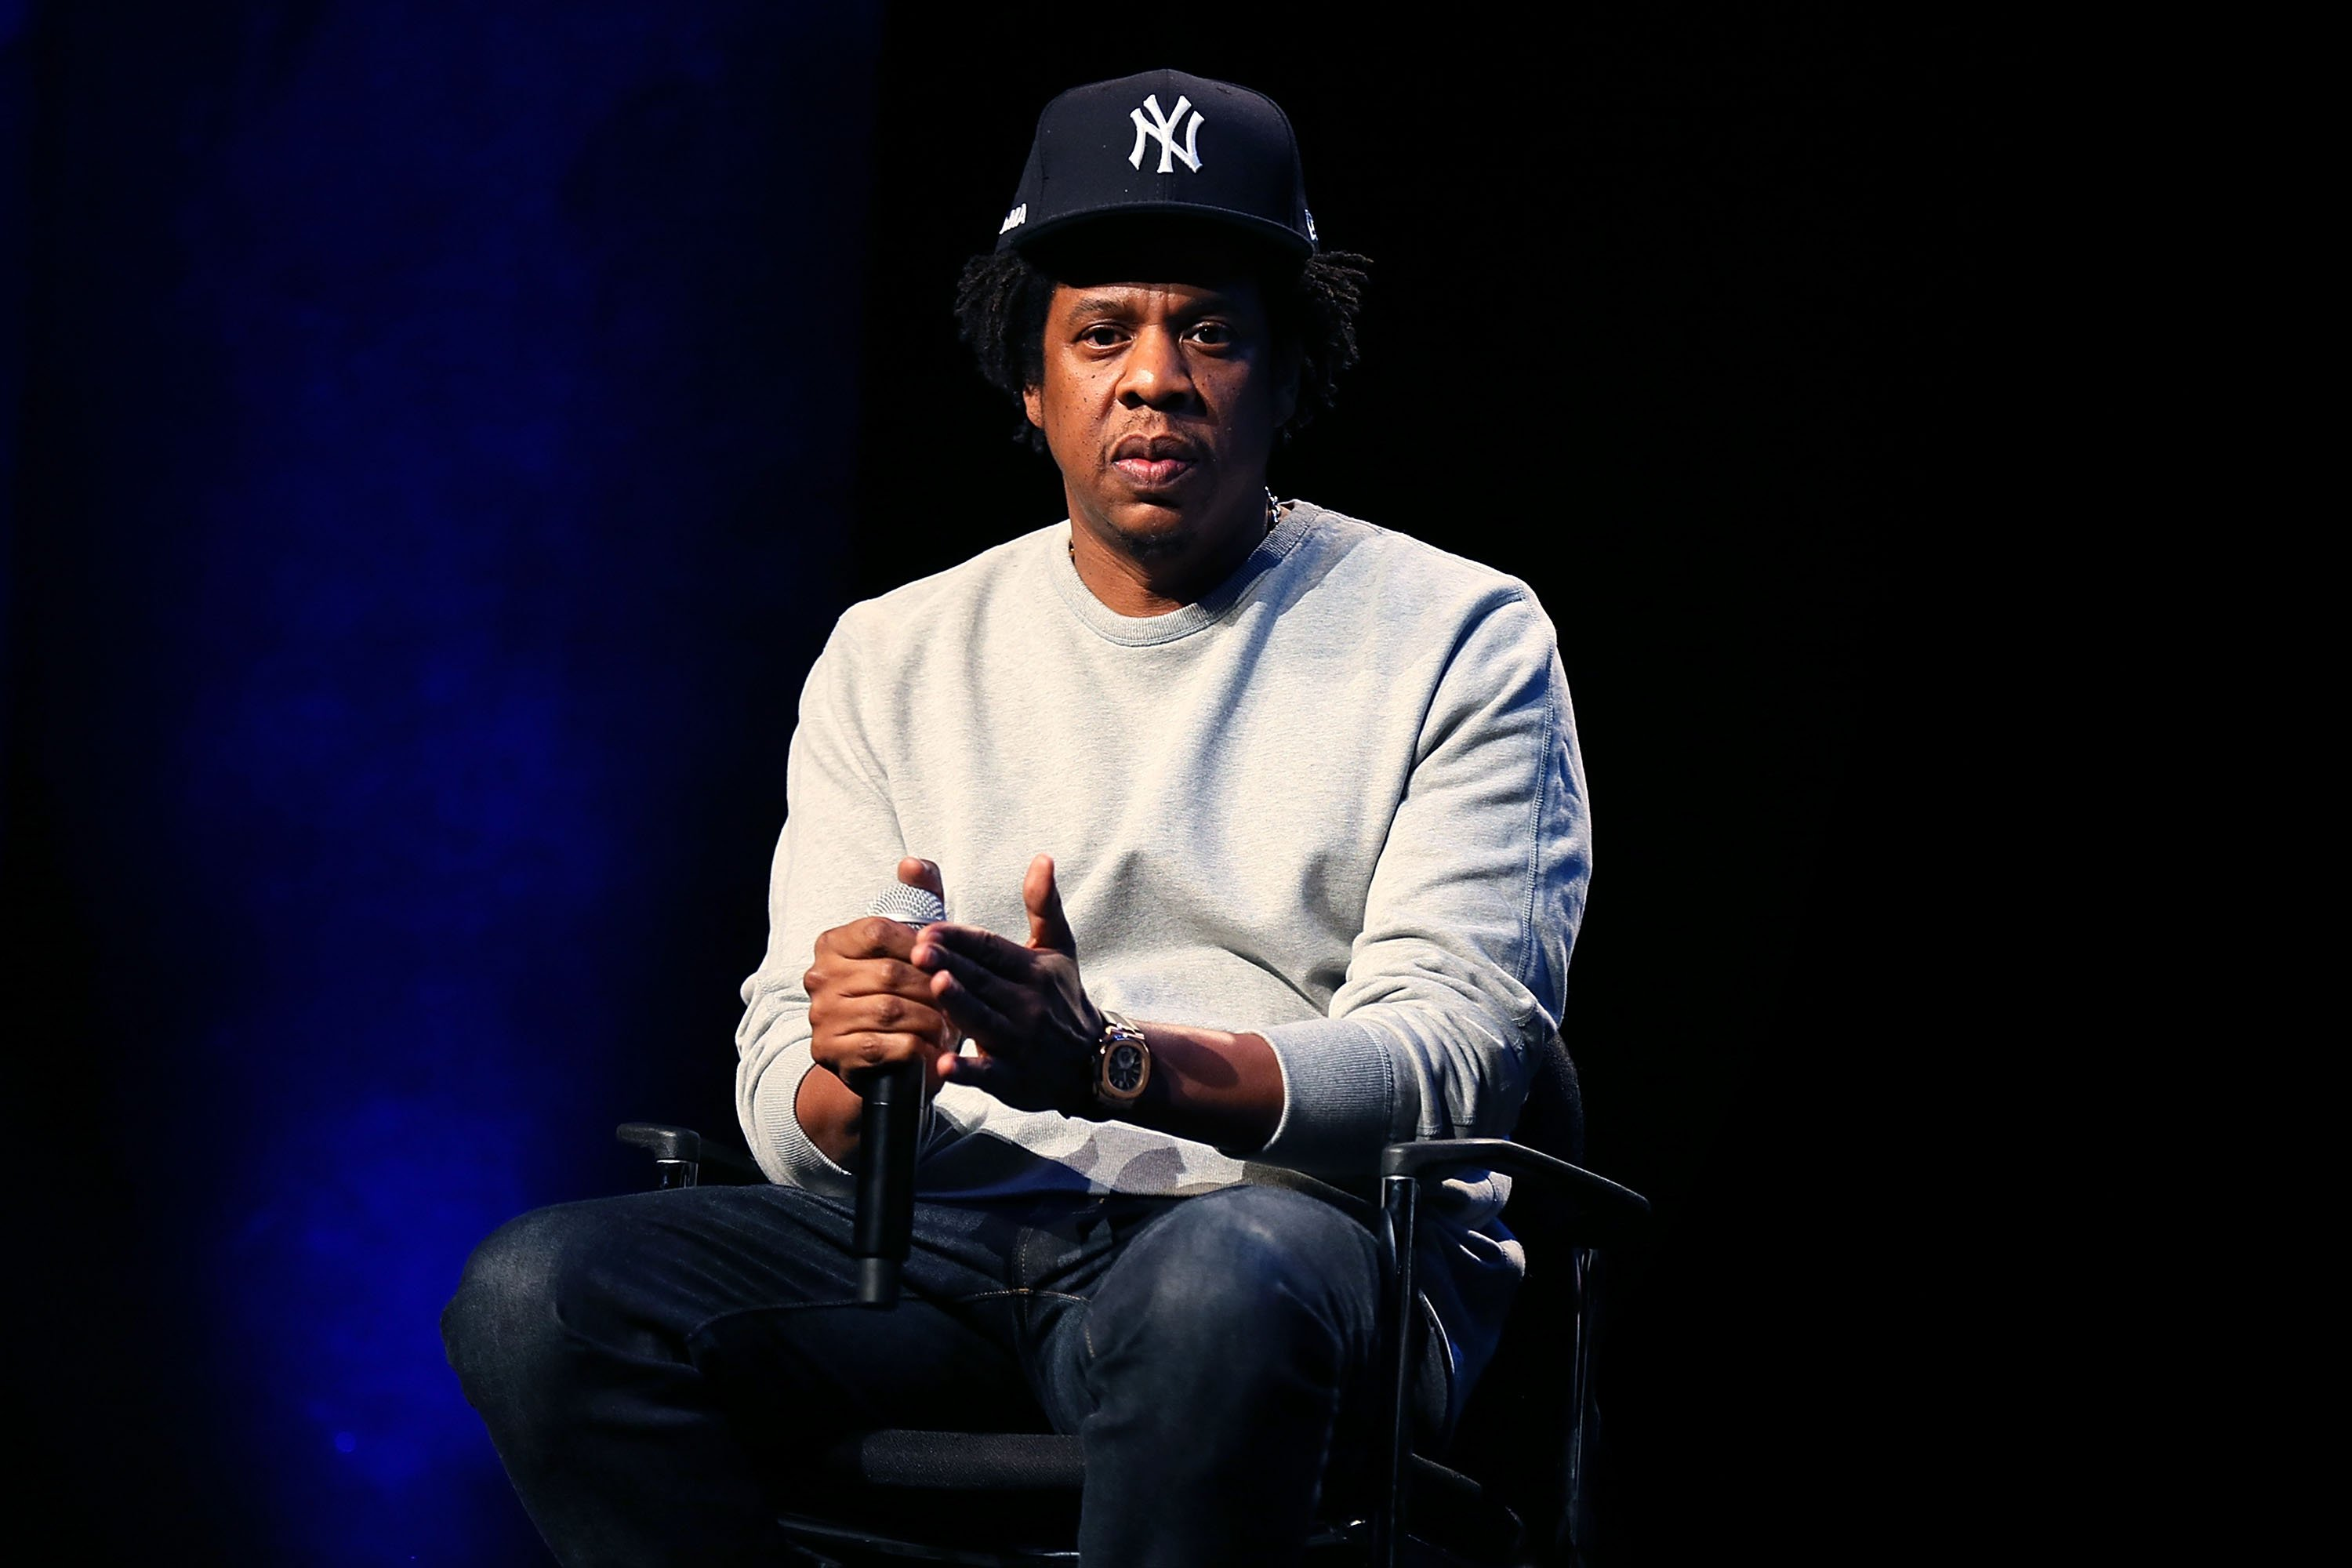 Jay-Z attends Criminal Justice Reform Organization Launch on Jan. 23, 2019 in New York City | Photo: Getty Images